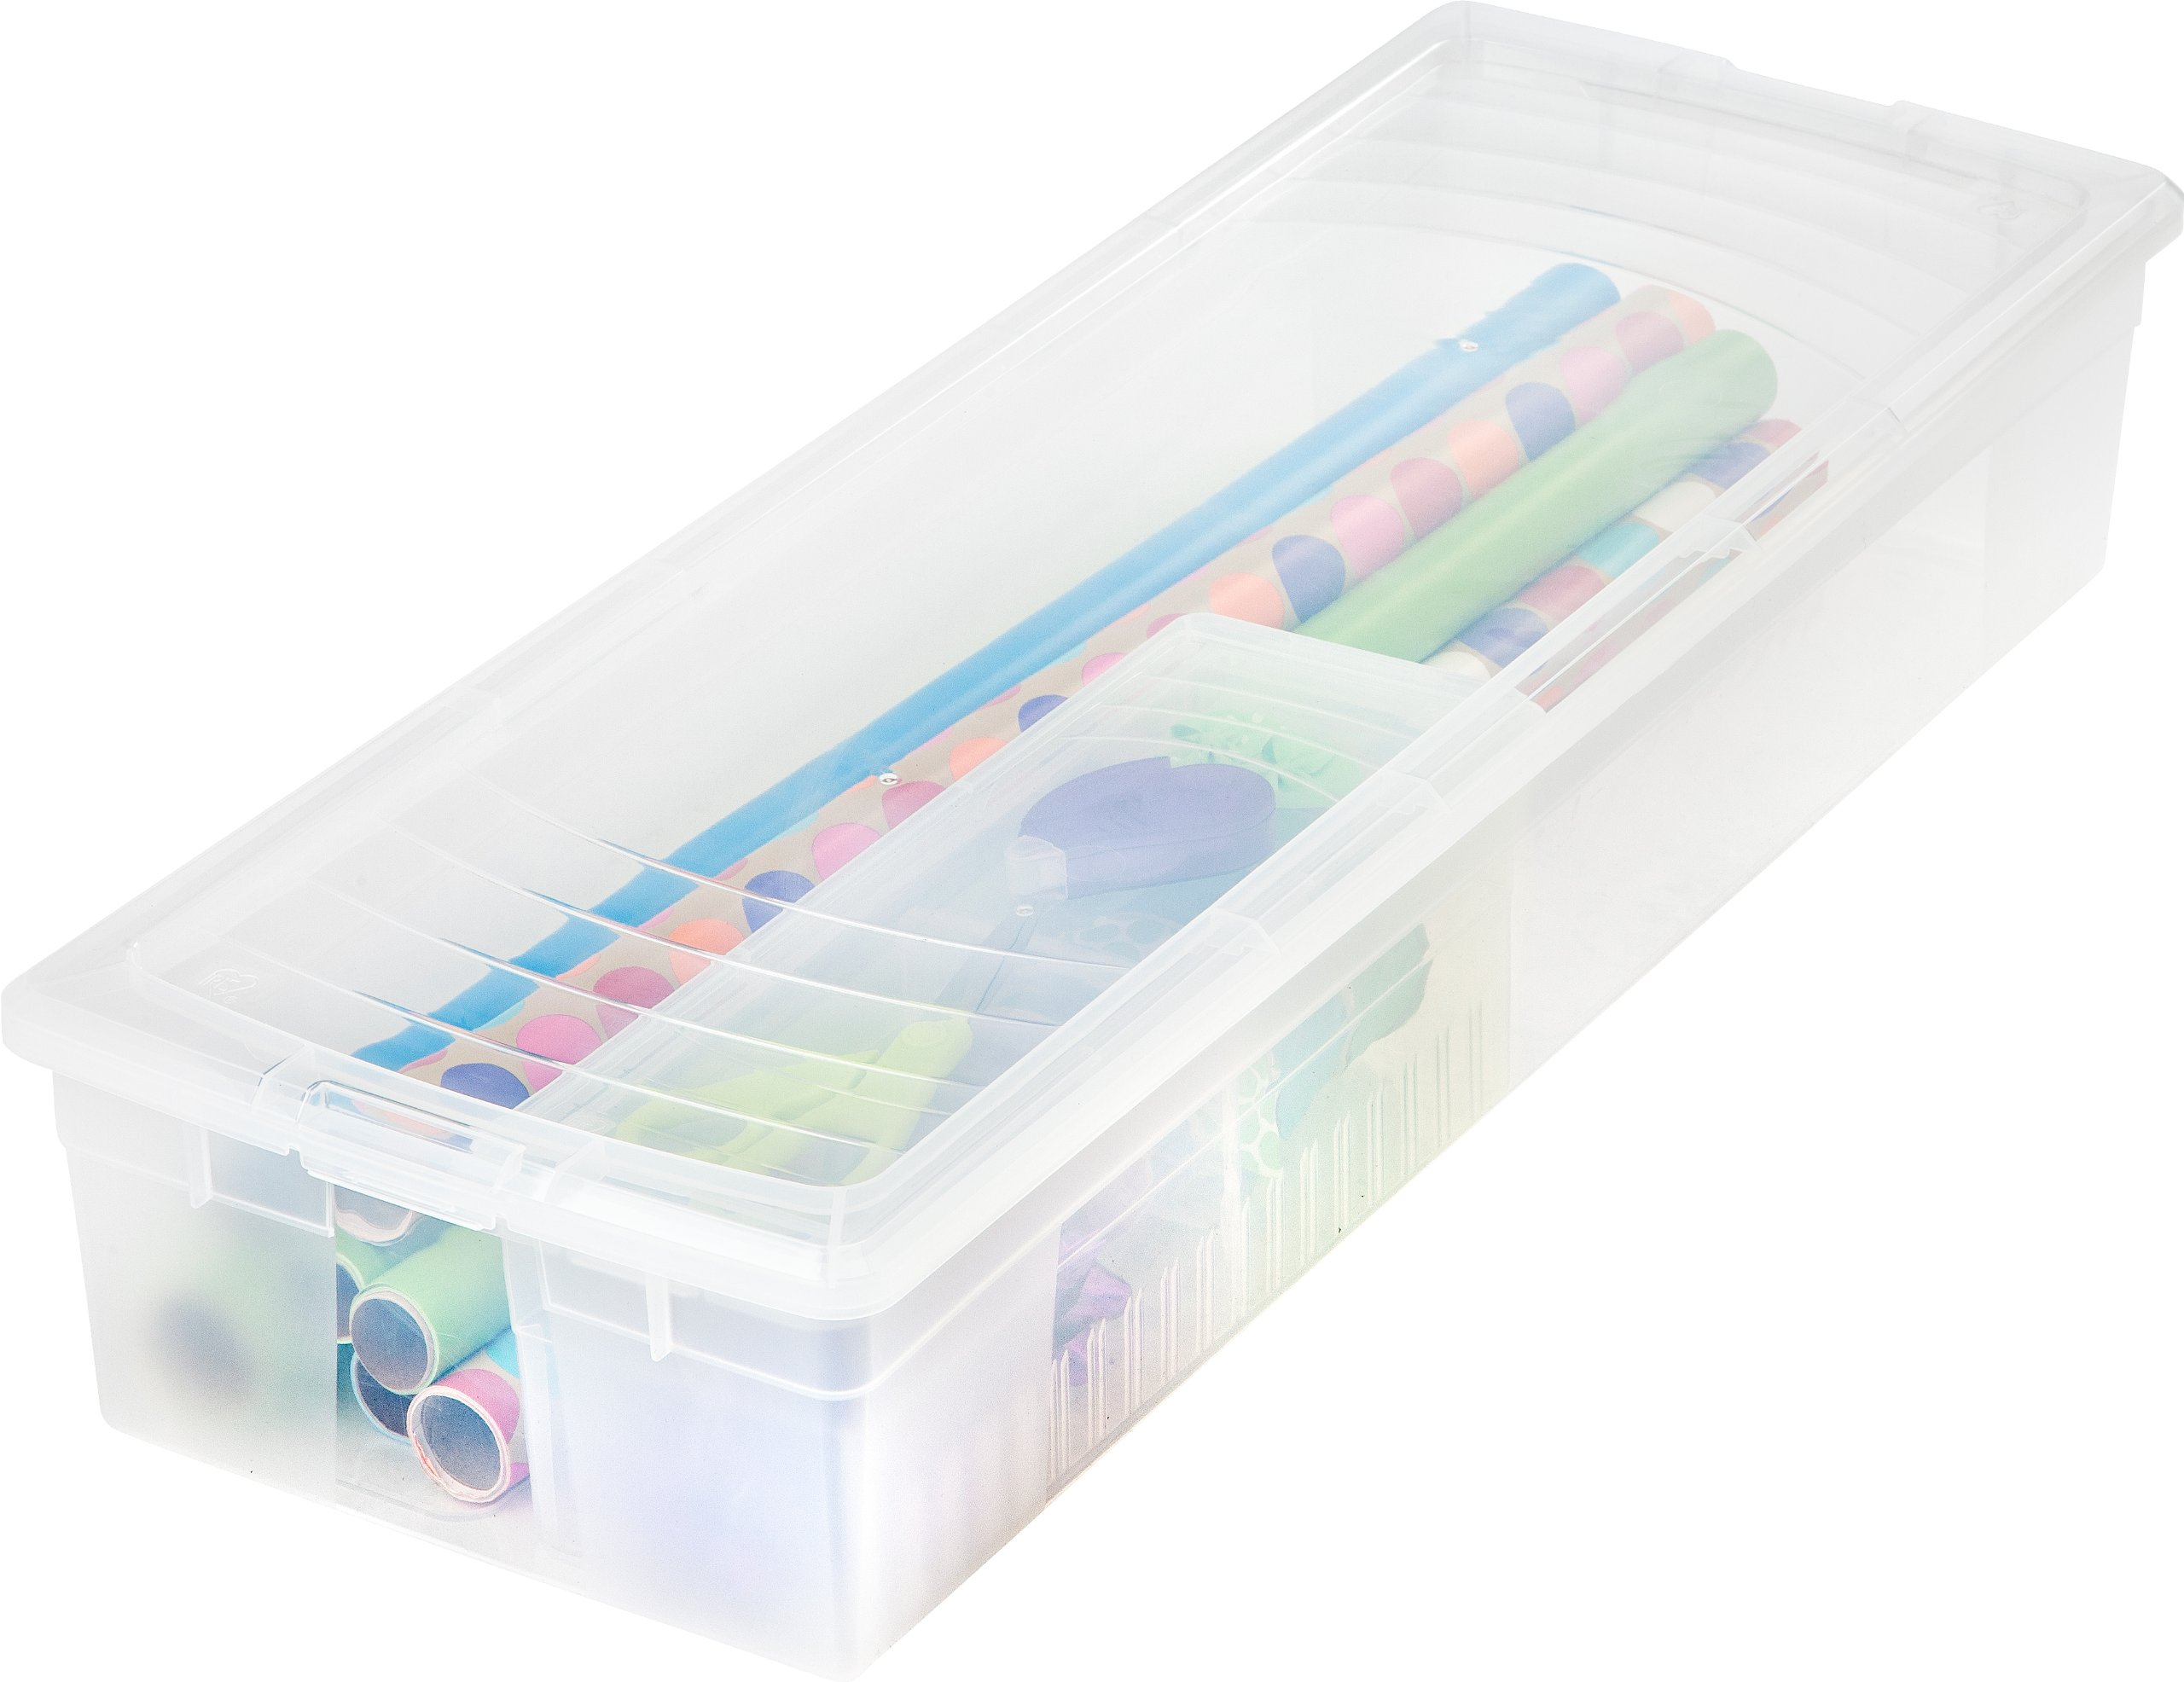 IRIS Wrapping Paper and Ribbon Storage Box Set, 2 Pack, Clear by IRIS USA, Inc.